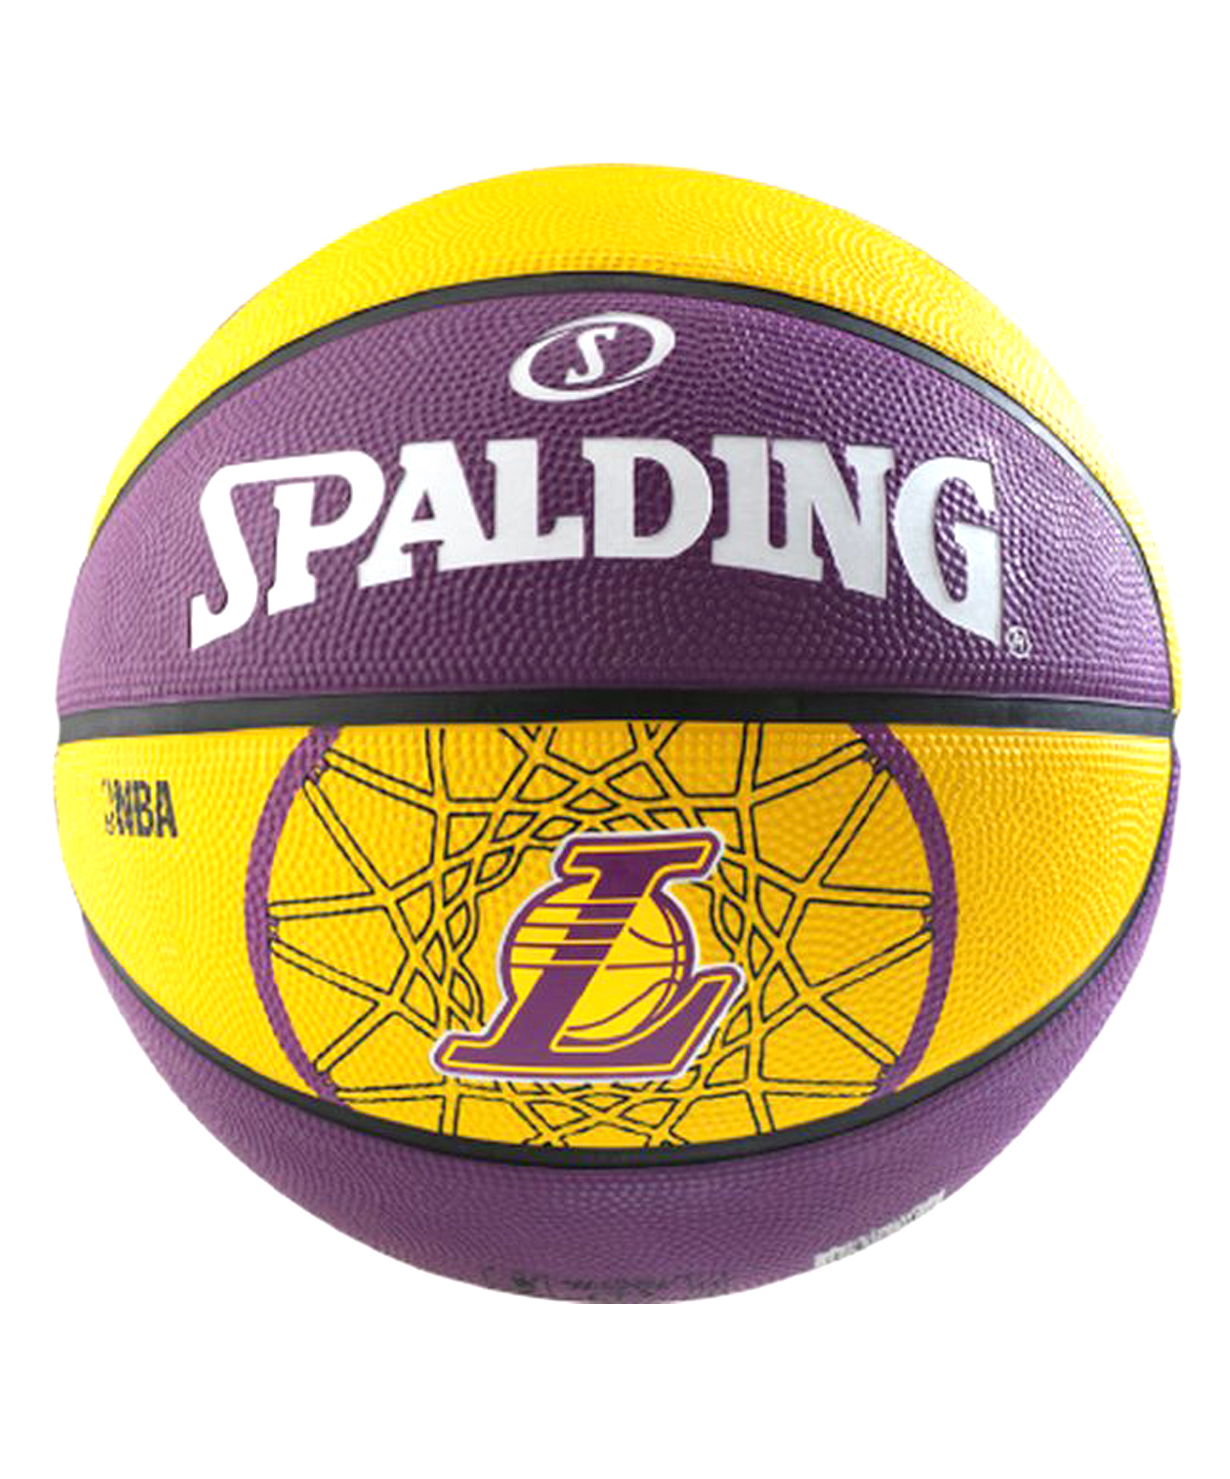 https://static-sl.insales.ru/images/products/1/6094/345667534/spalding-nba-lakers.jpg